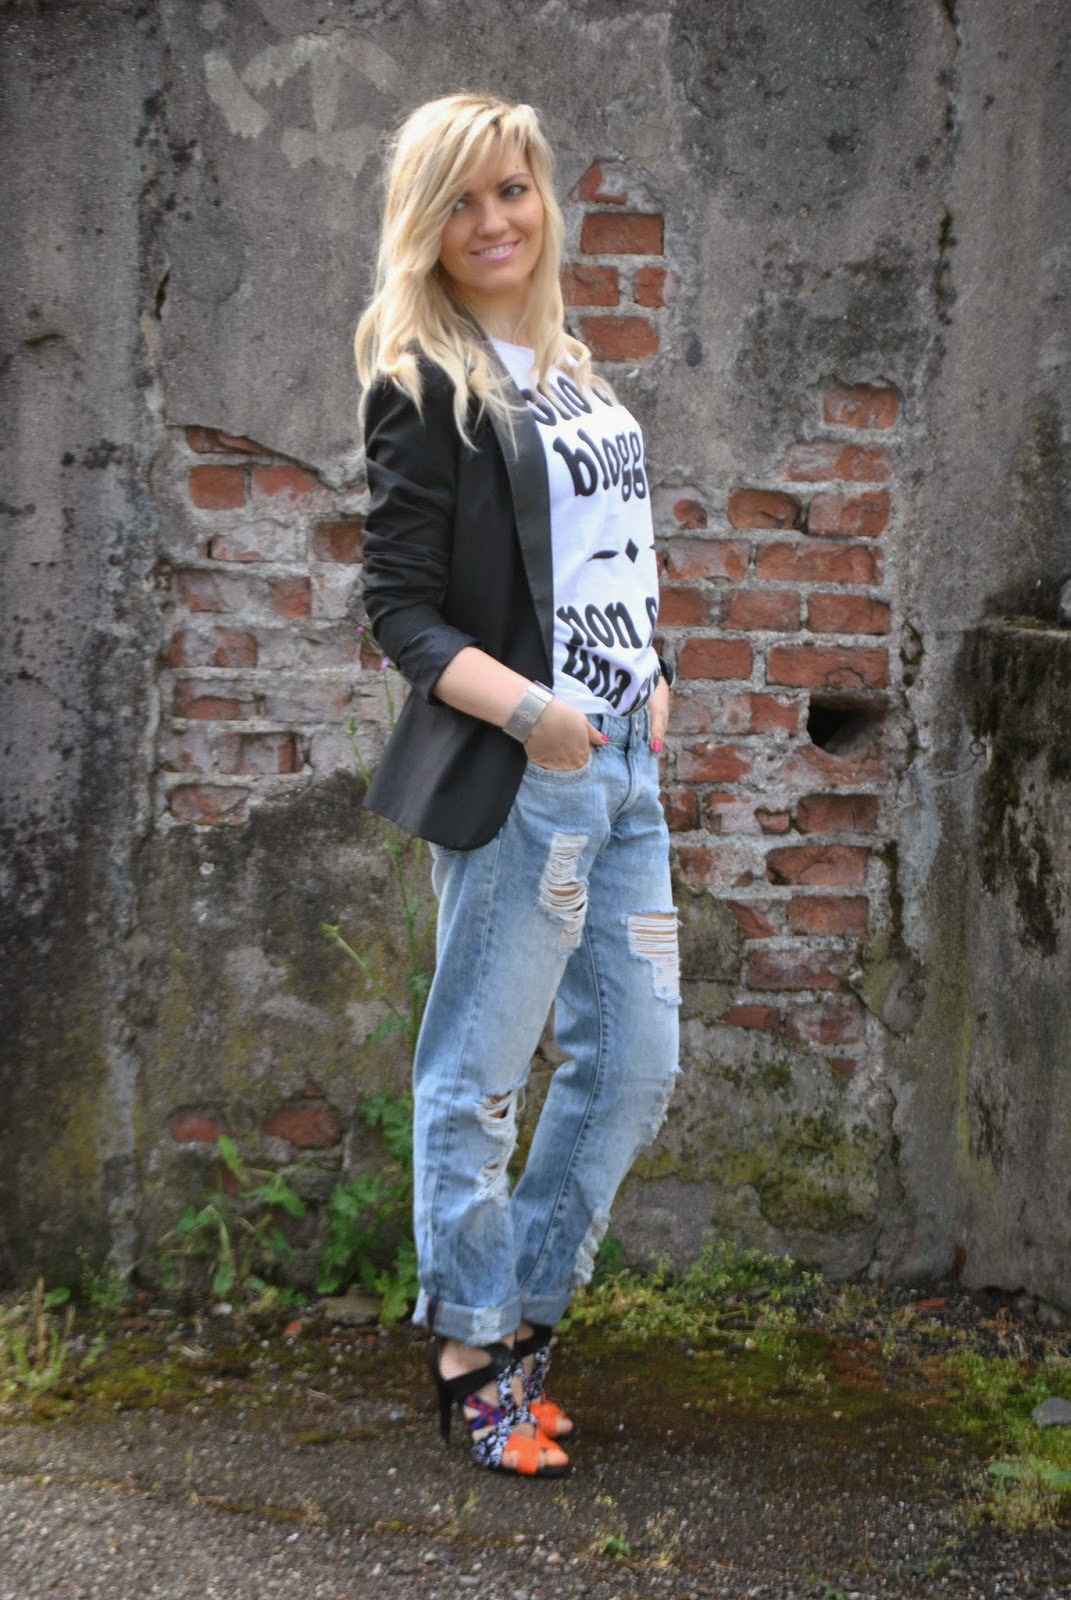 outfit boyfriend ripped jeans come abbinare i boyfriend jeans abbinamenti boyfriend jeans tshirt happiness mariafelicia magno fashion blogger colorblock by felym outfit aprile 2015 outfit primaverili donna spring outfit fashion bloggers italy fashion blogger italiane blog di moda ragazze bionde milano capelli biondi blondie blonde hair